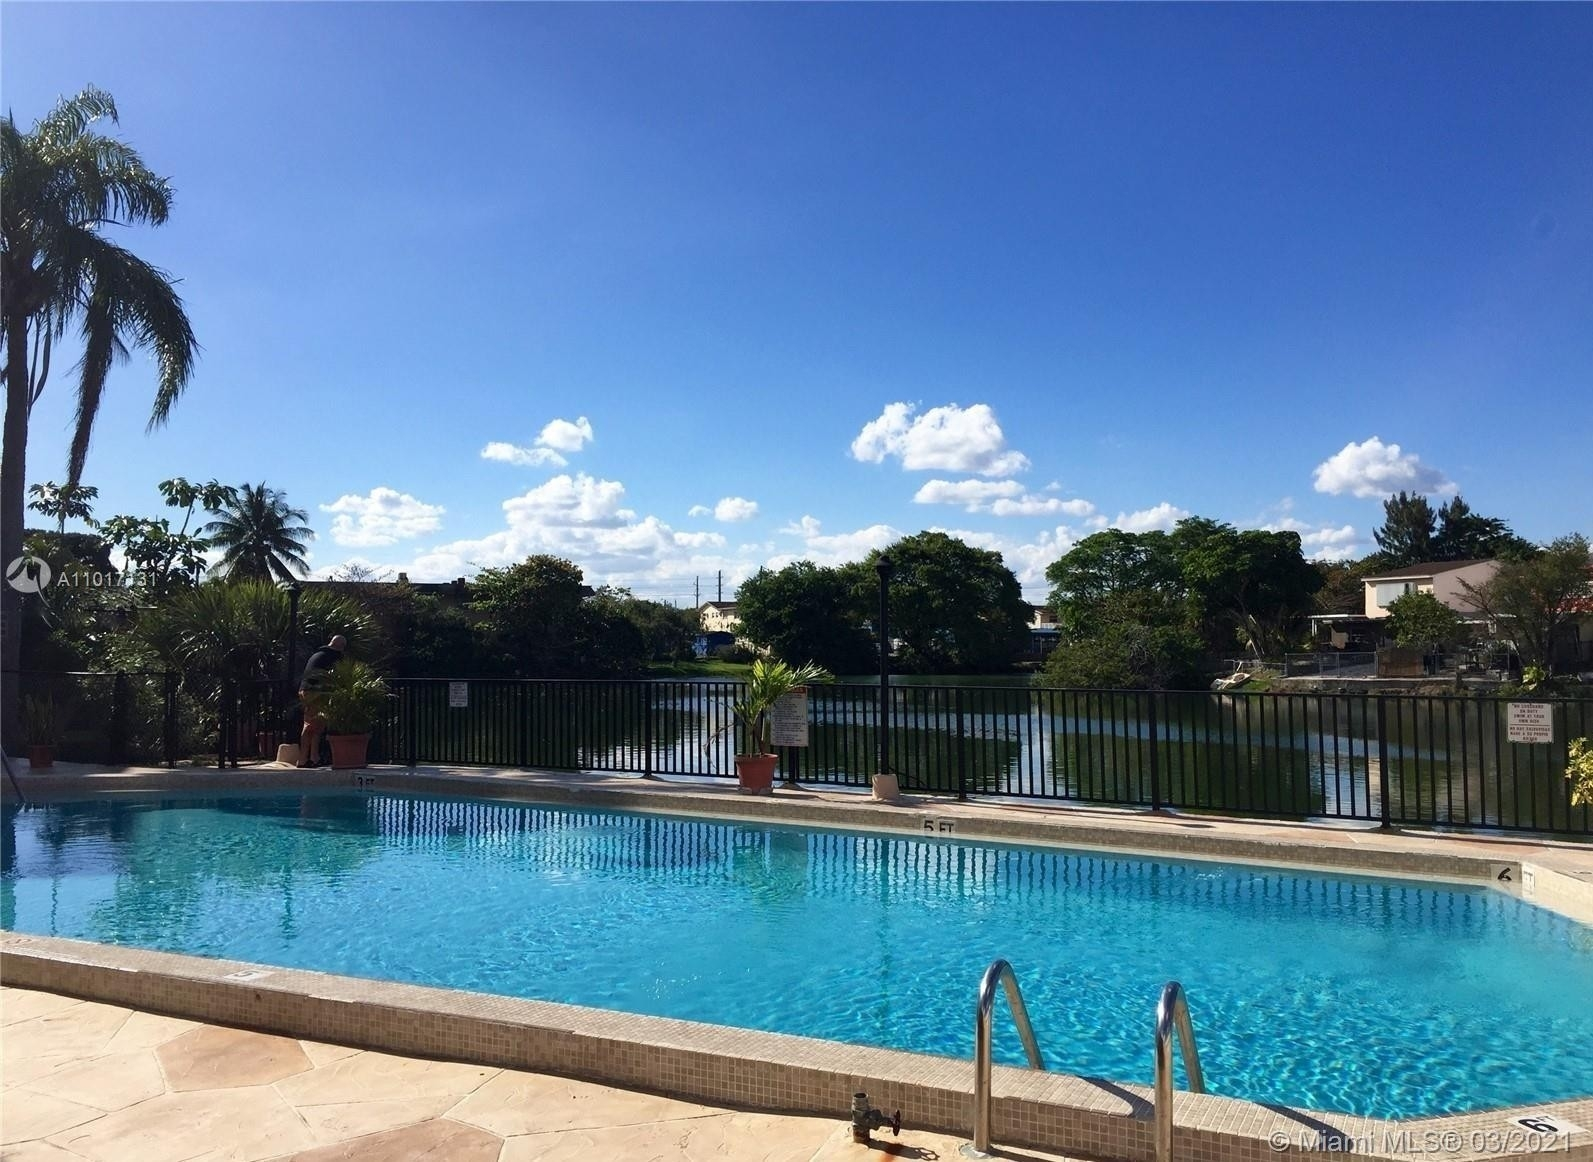 Condominium for Sale at 1325 W 68th St , 211 Hialeah, FL 33014